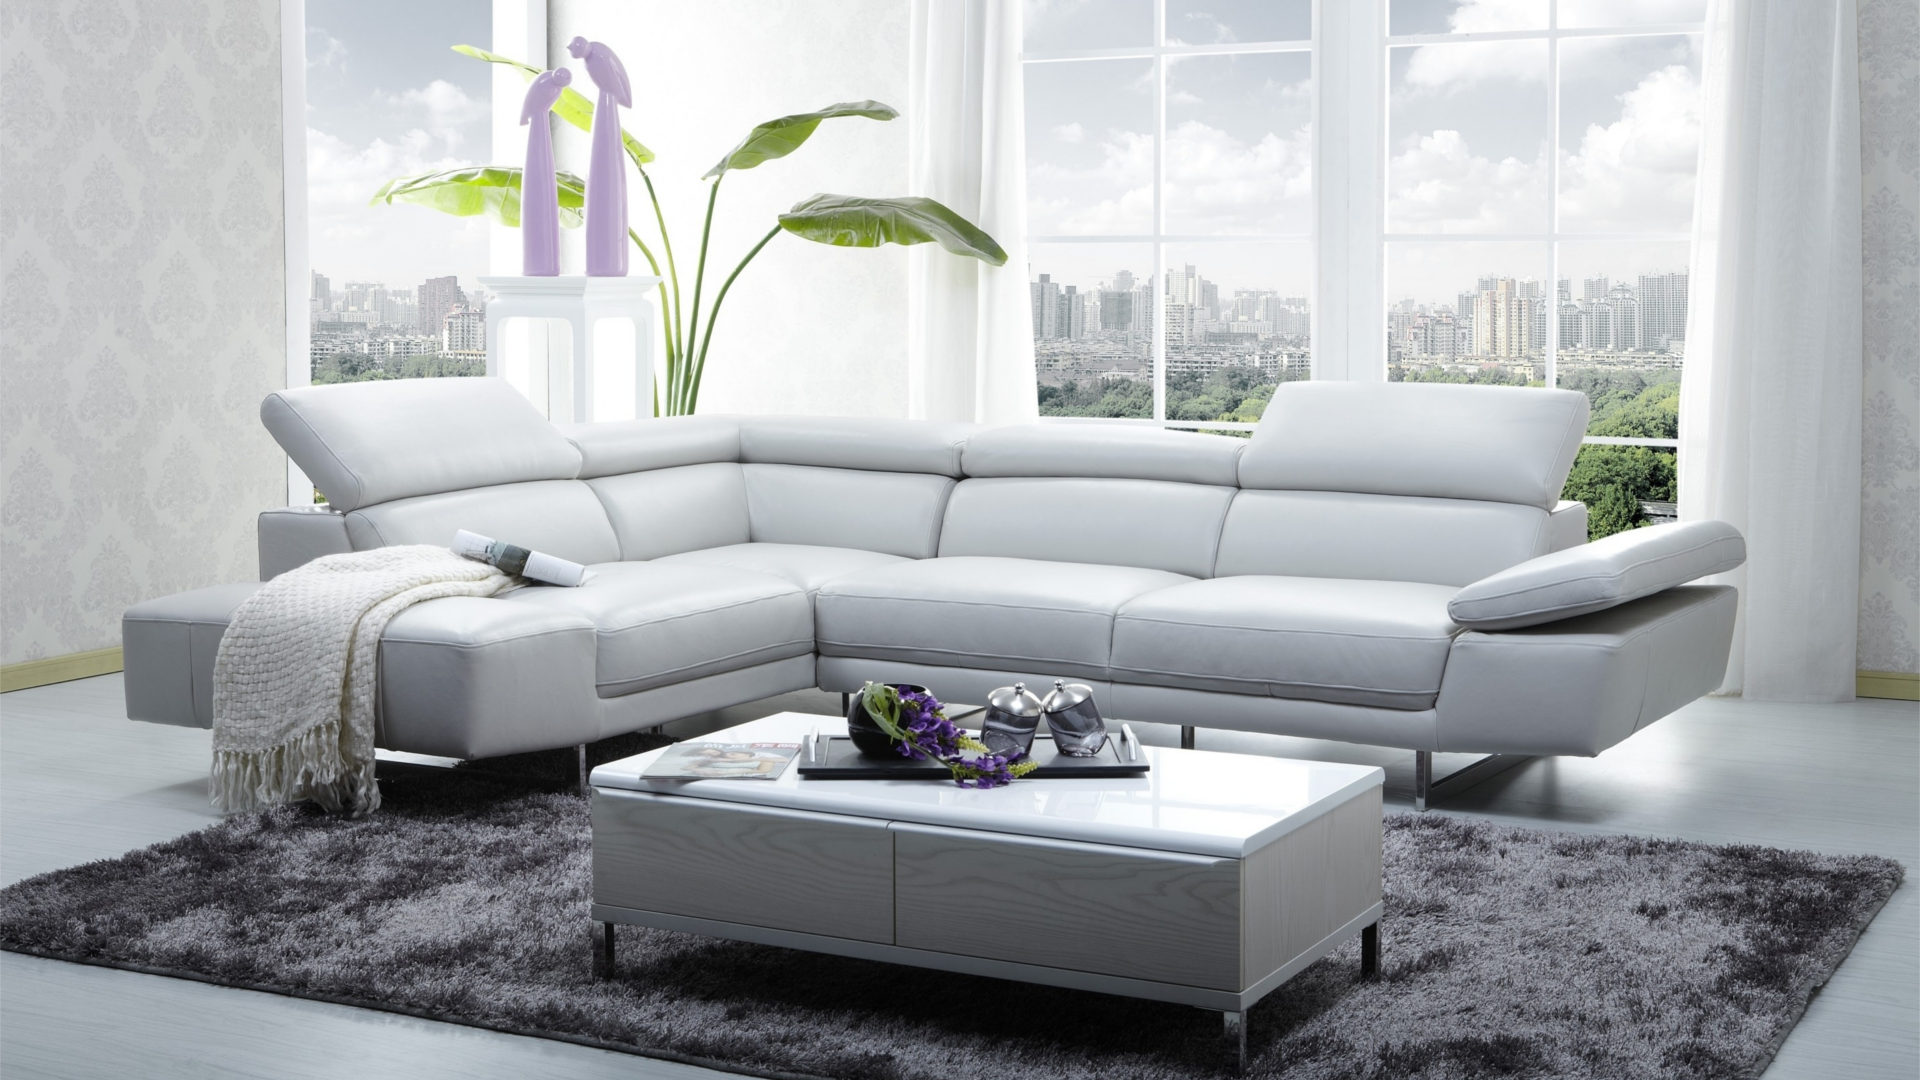 Modern Sectional Sofa Designs | Design Trends - Premium PSD, Vector ...